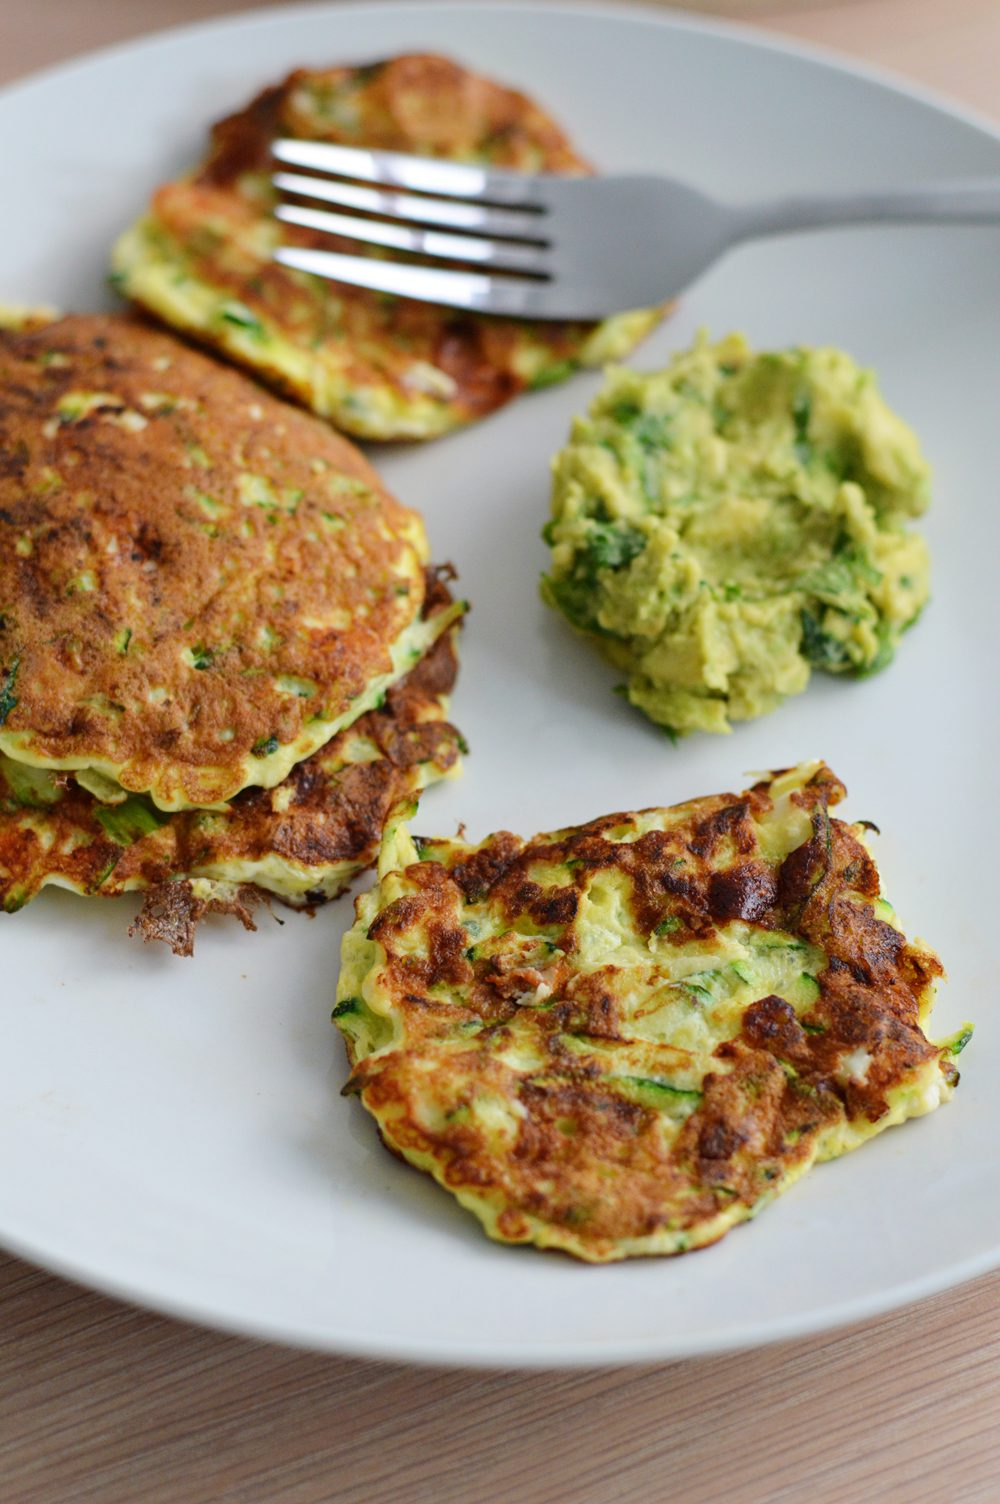 Courgette and feta fritters 2